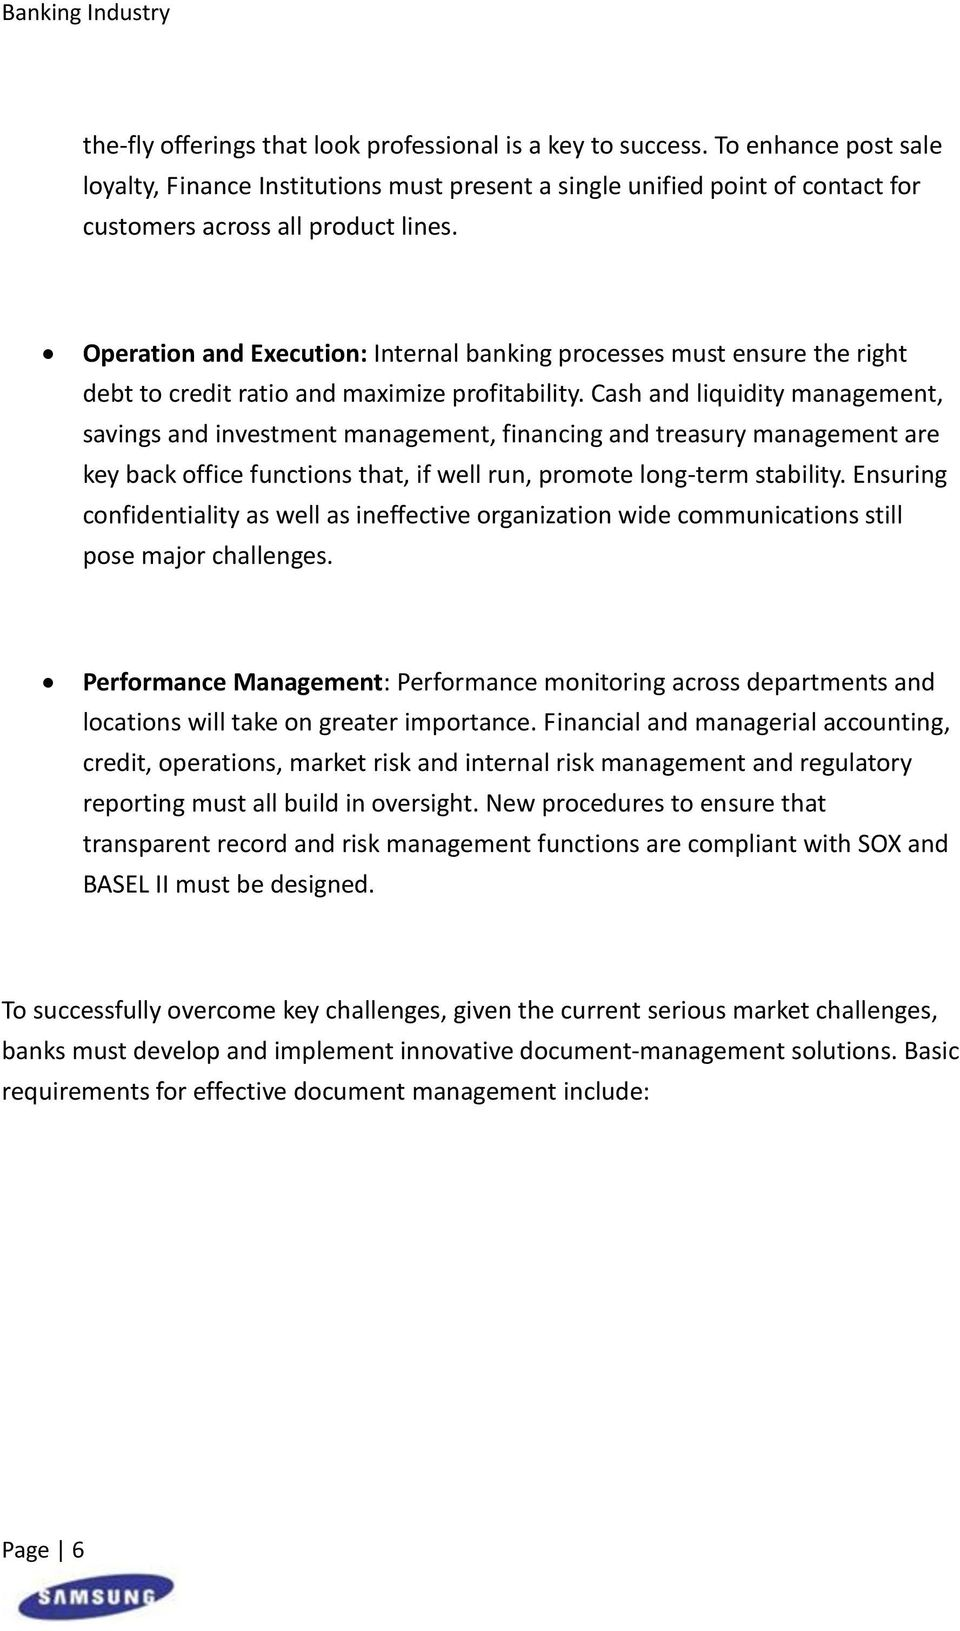 Cash and liquidity management, savings and investment management, financing and treasury management are key back office functions that, if well run, promote long-term stability.